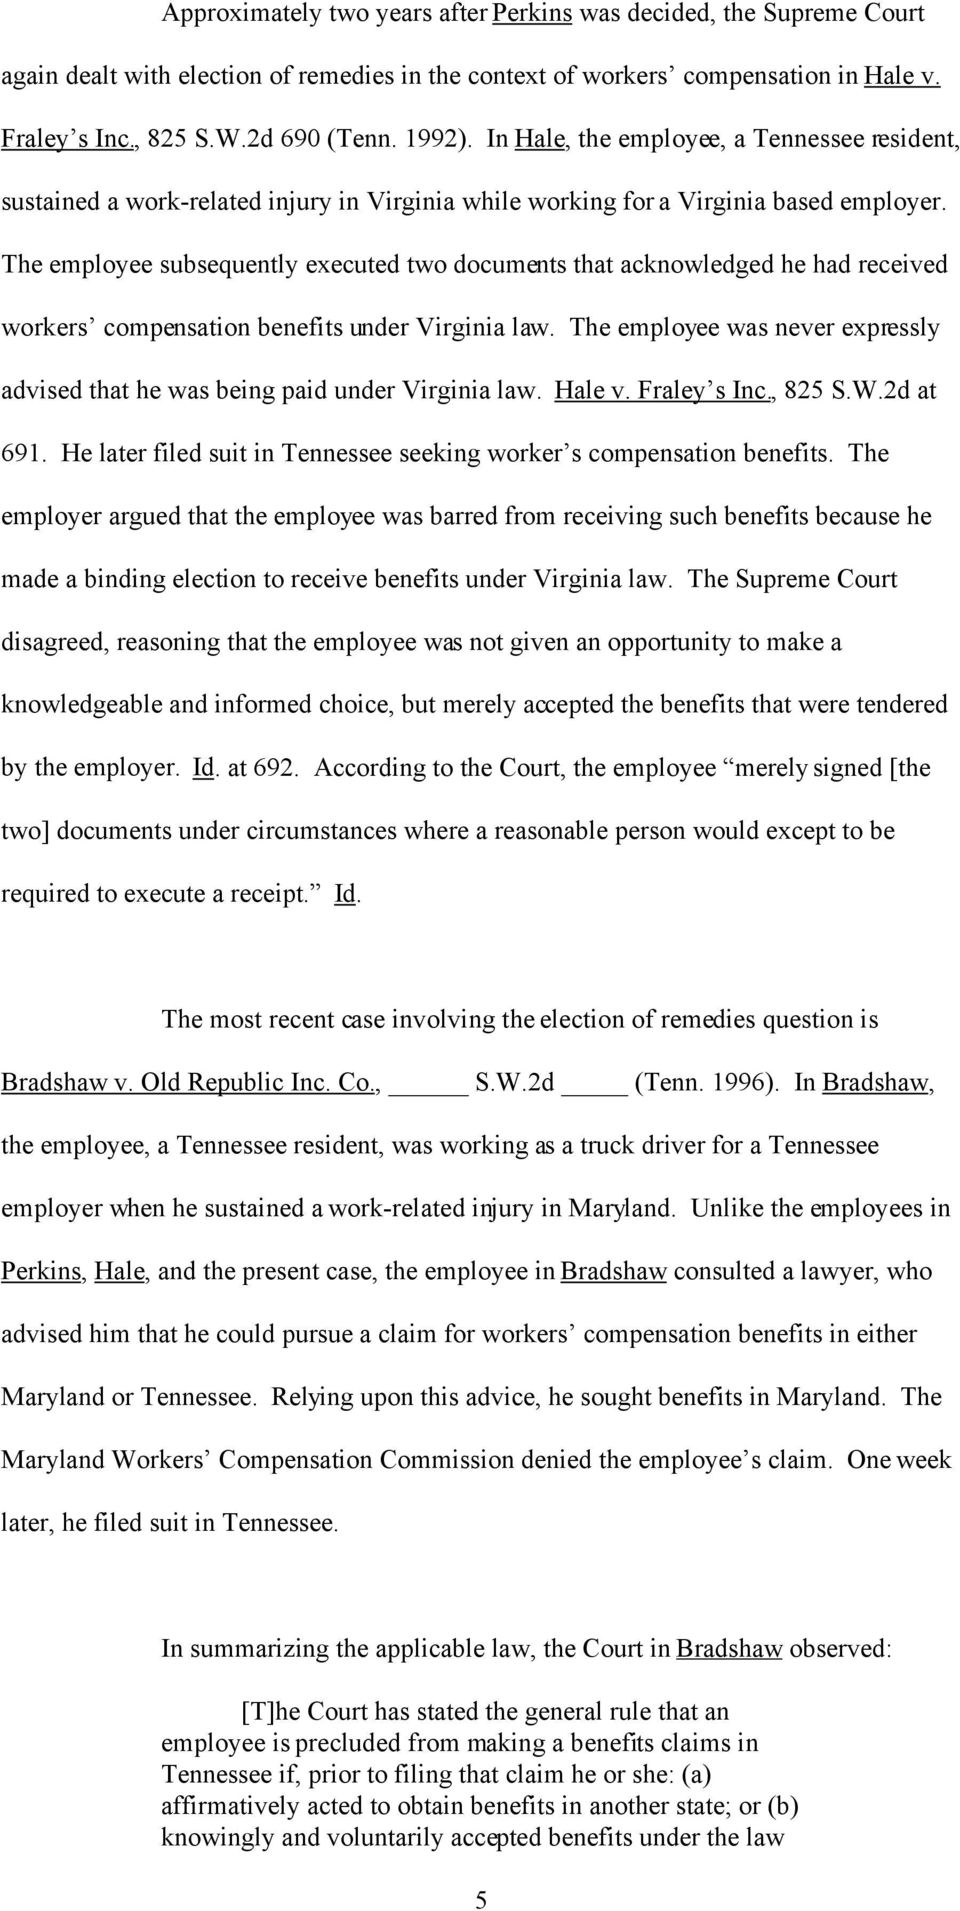 The employee subsequently executed two documents that acknowledged he had received workers compensation benefits under Virginia law.